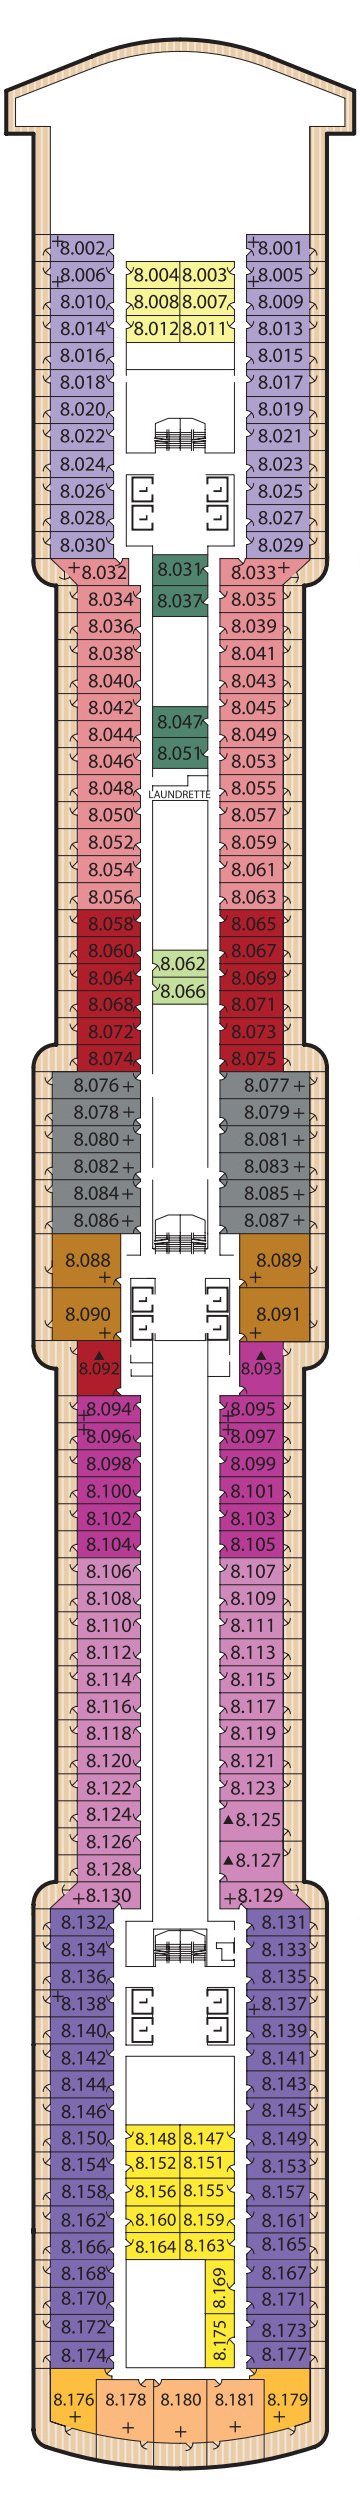 Queen Elizabeth Deck 8 layout